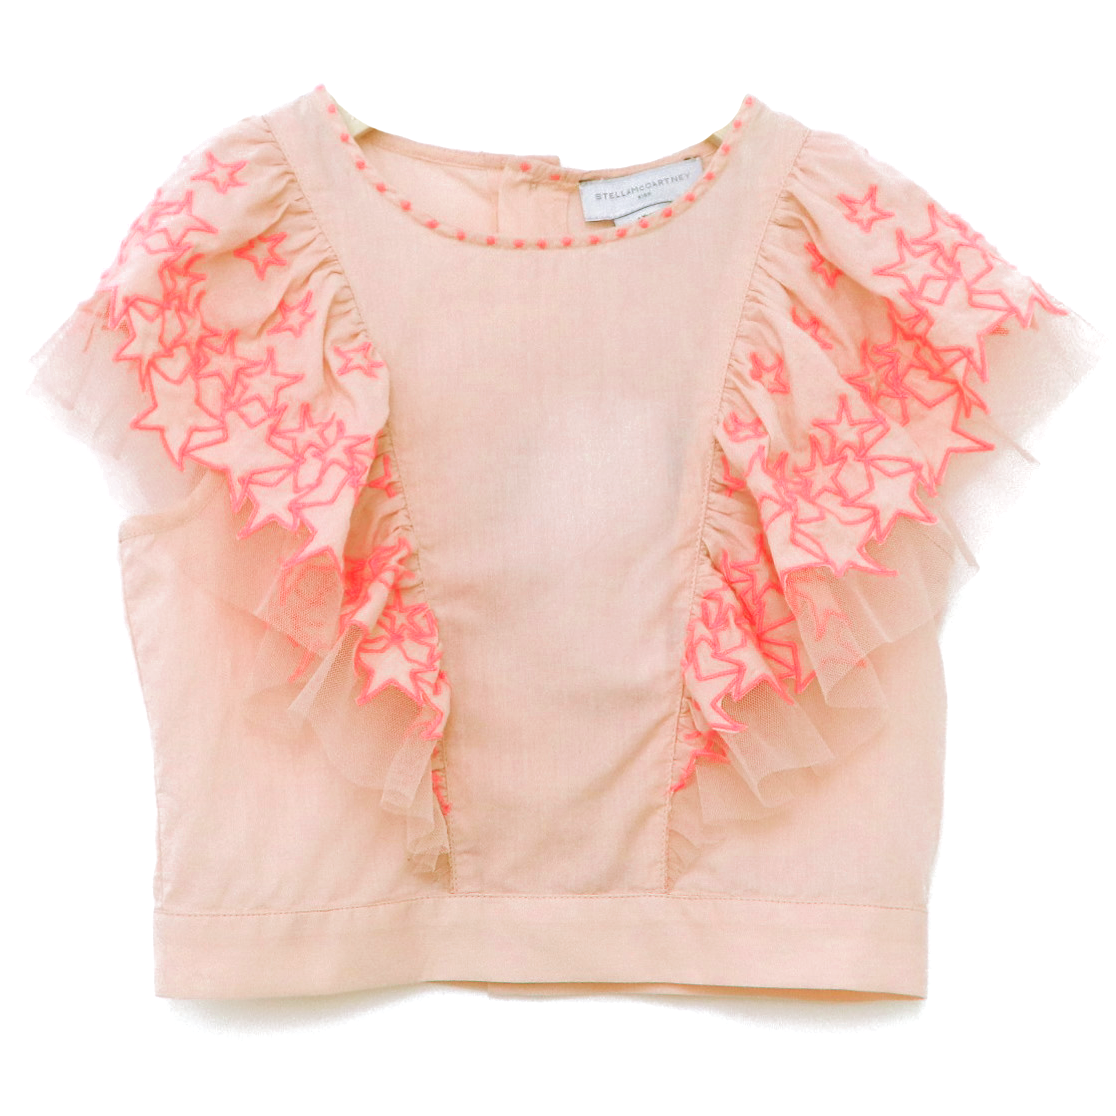 yoya, kids, girls, stella mccartney, summer, sleeveless, embroidered, ruffle shoulder, crop top